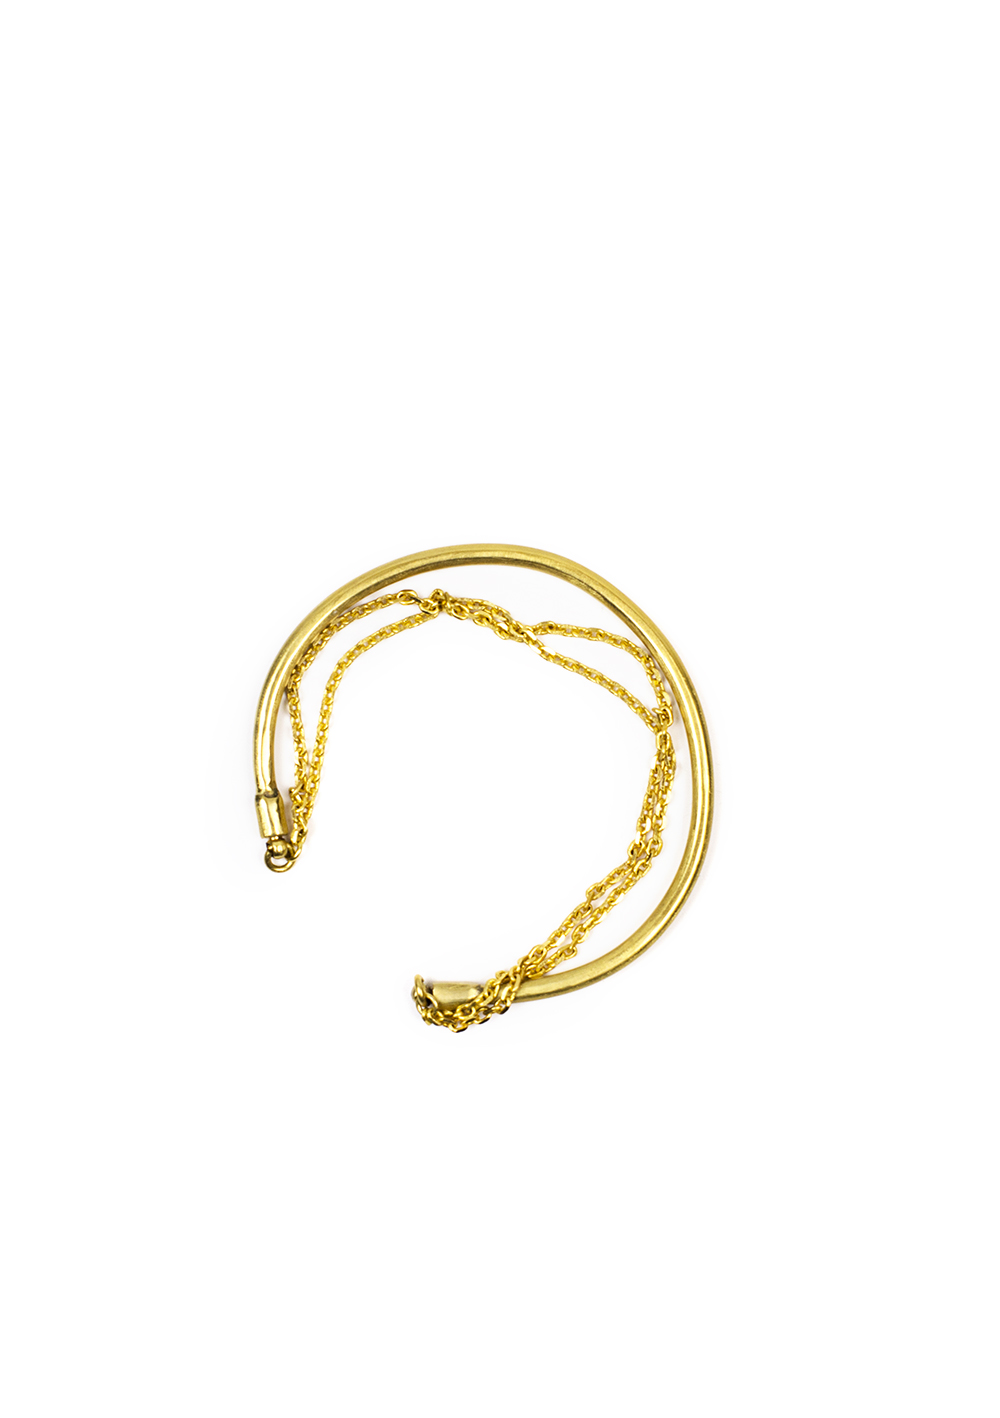 Bracelet Jonc double – Doré à l'or fin | Bresma | Label AÉ Paris